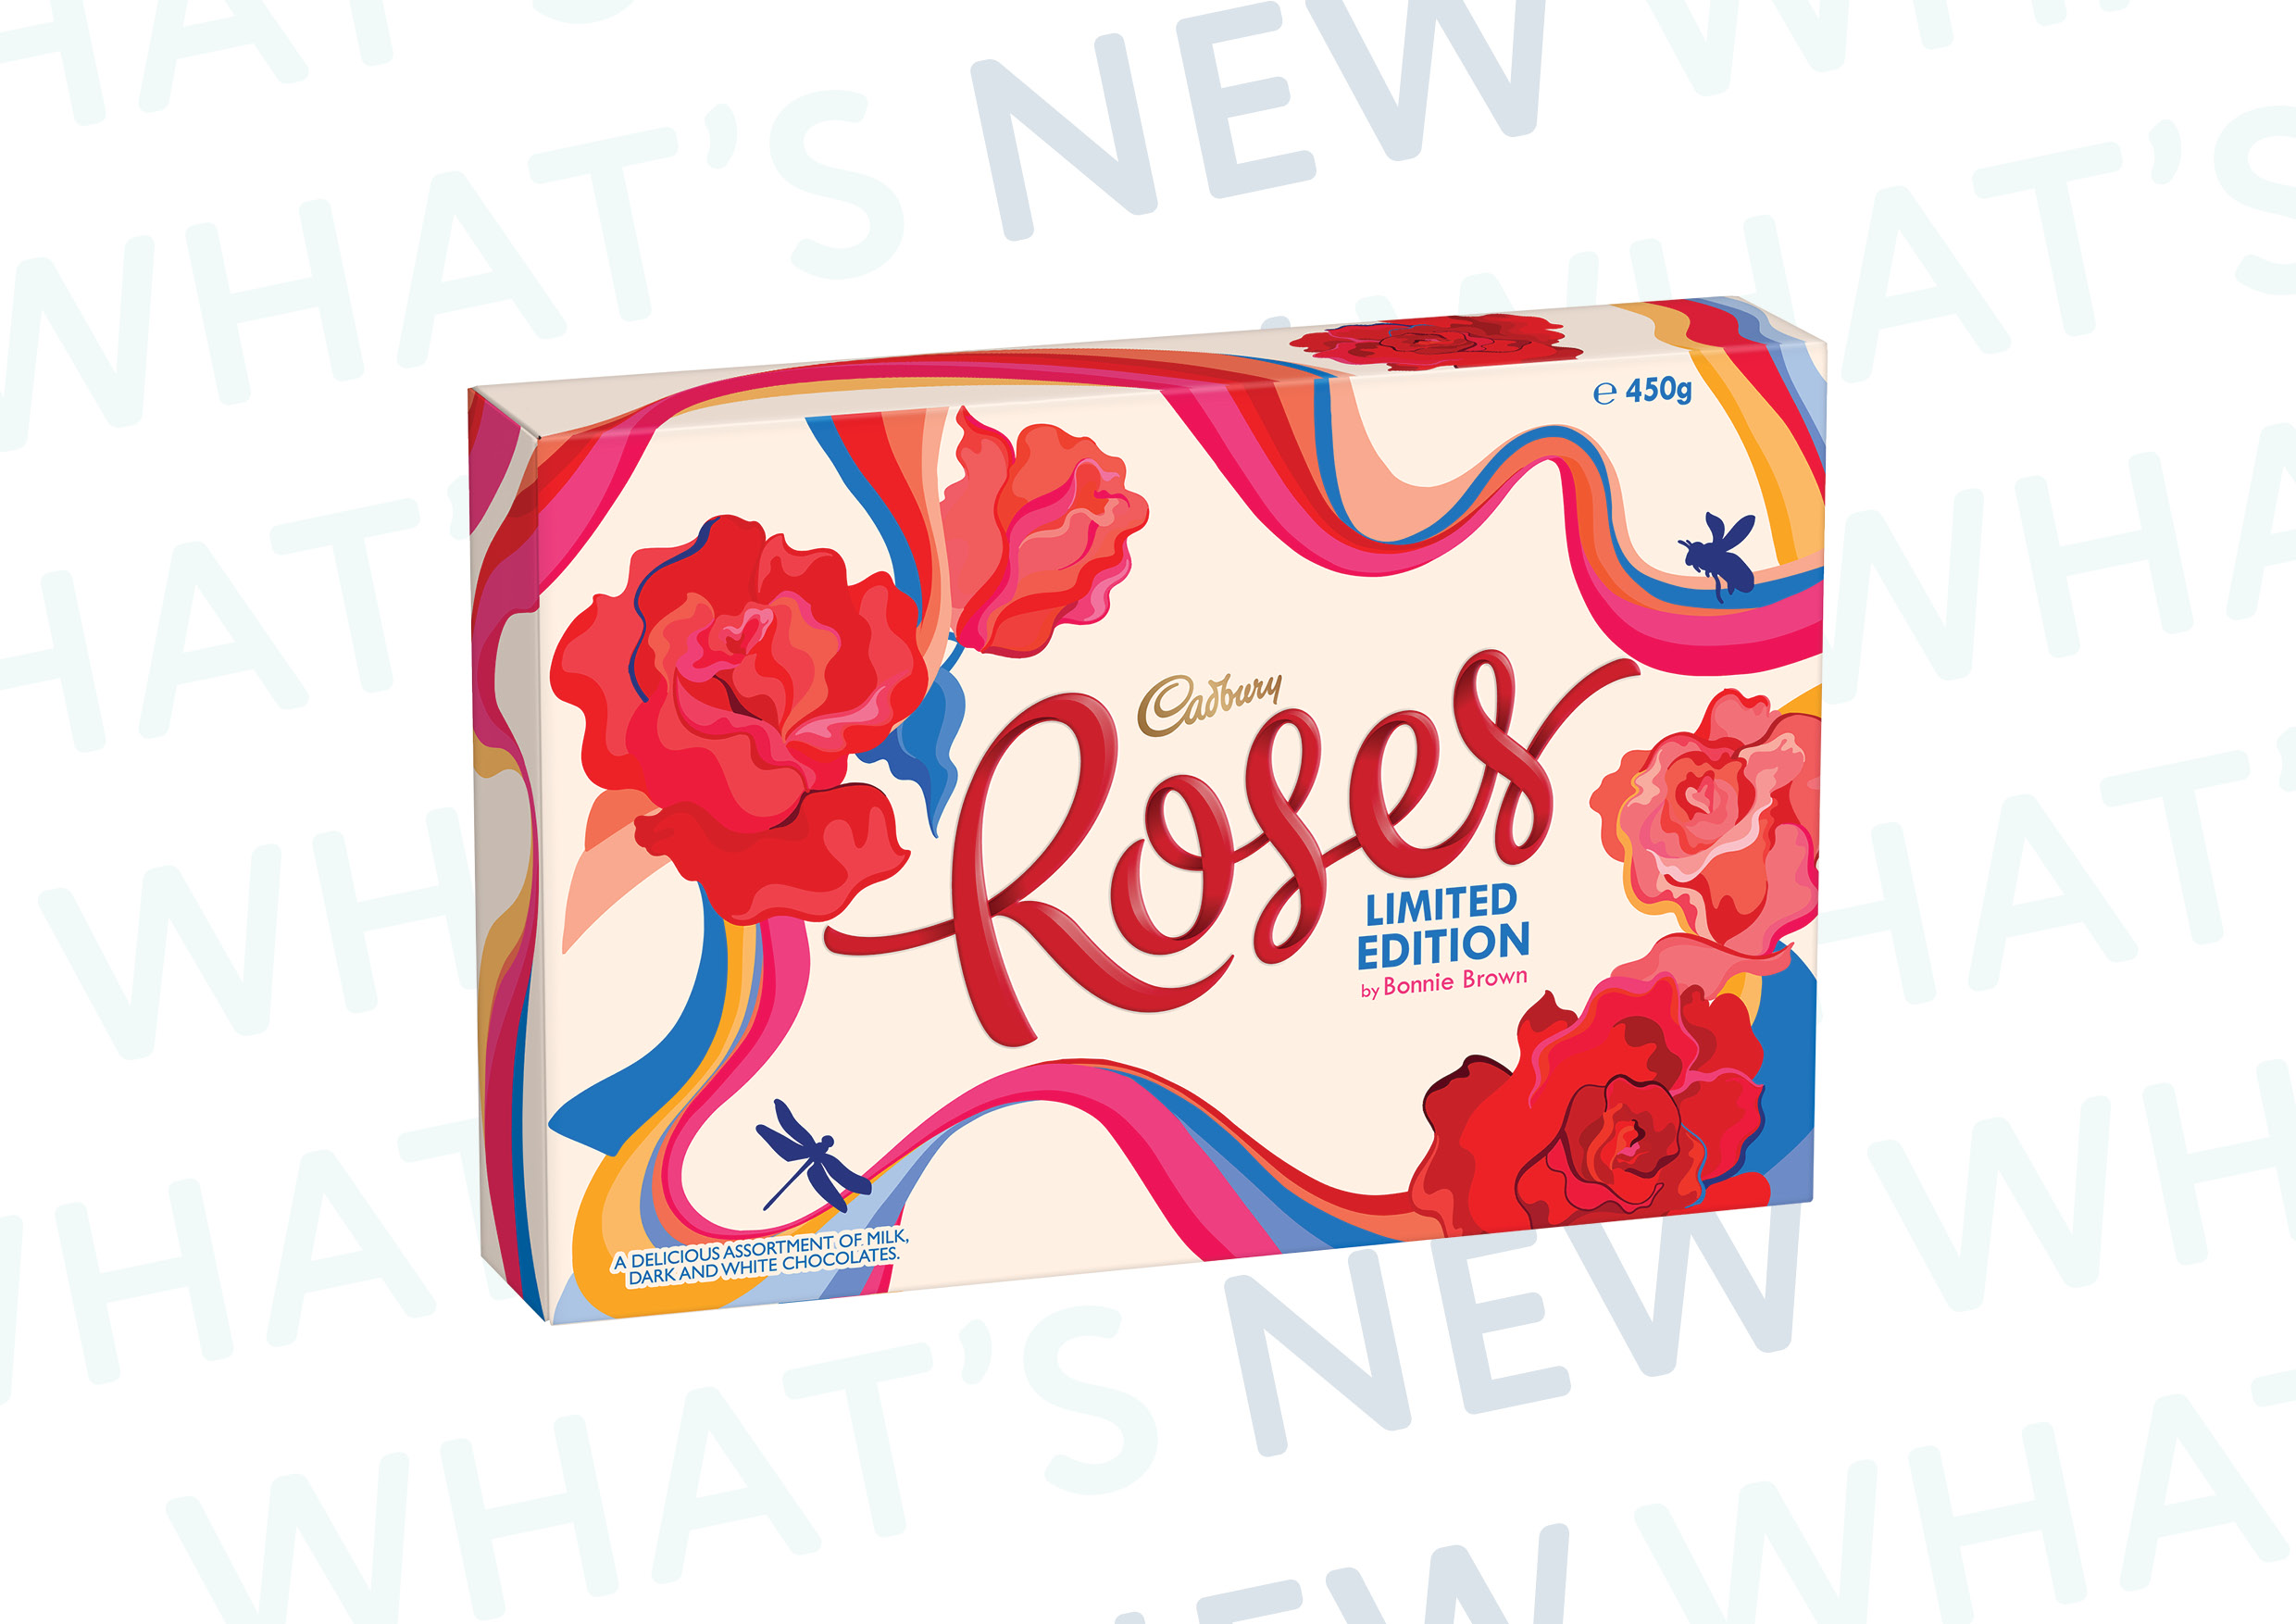 Cadbury Roses Partners With Kiwi Artist